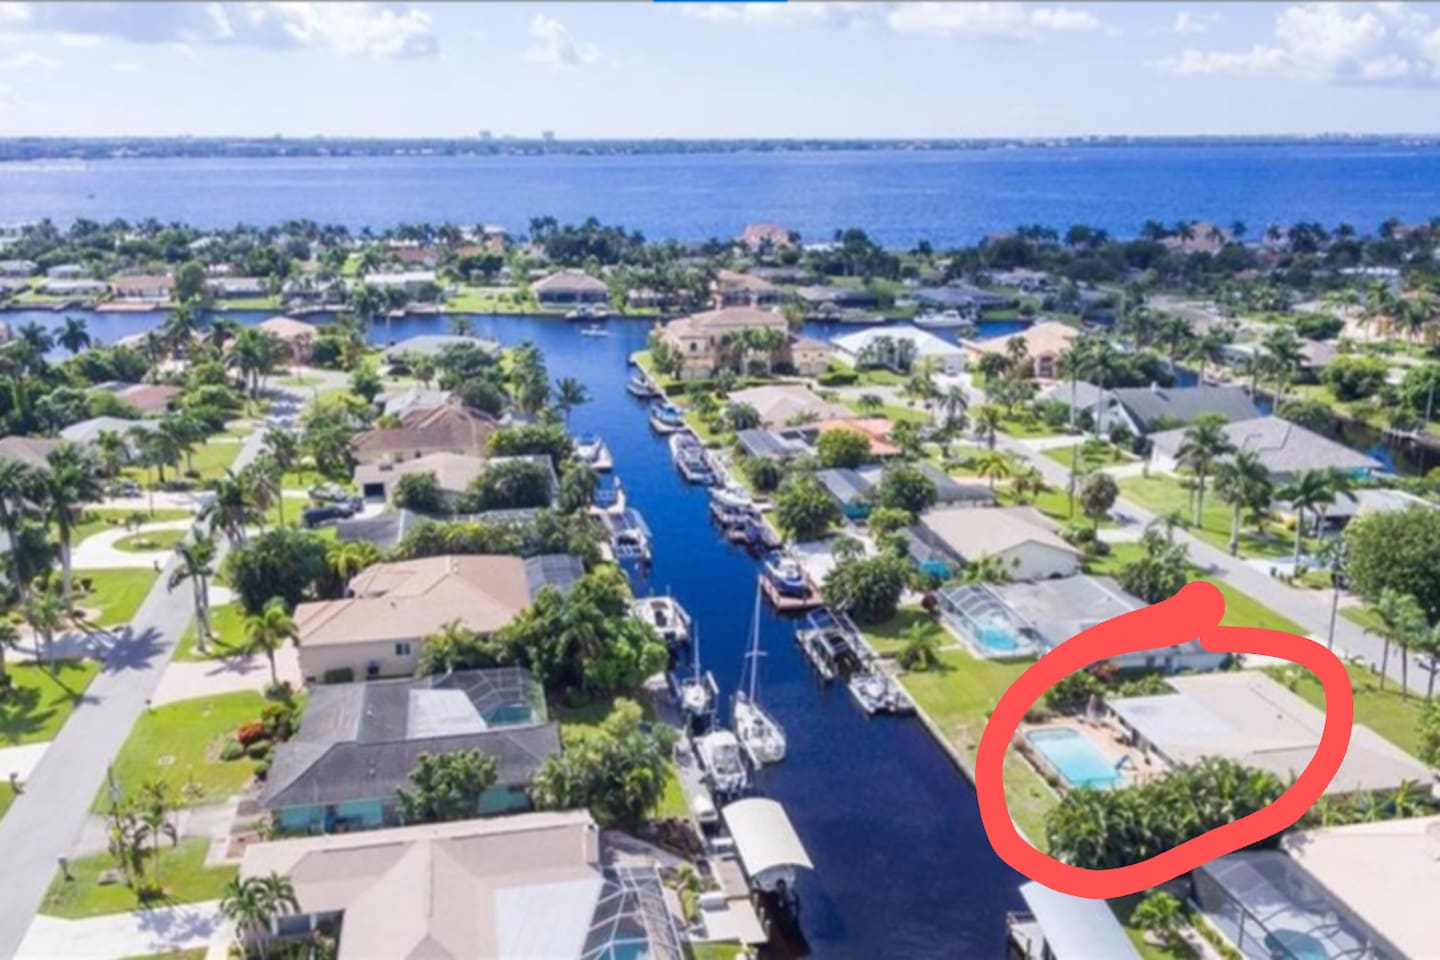 Arial view of house on canal